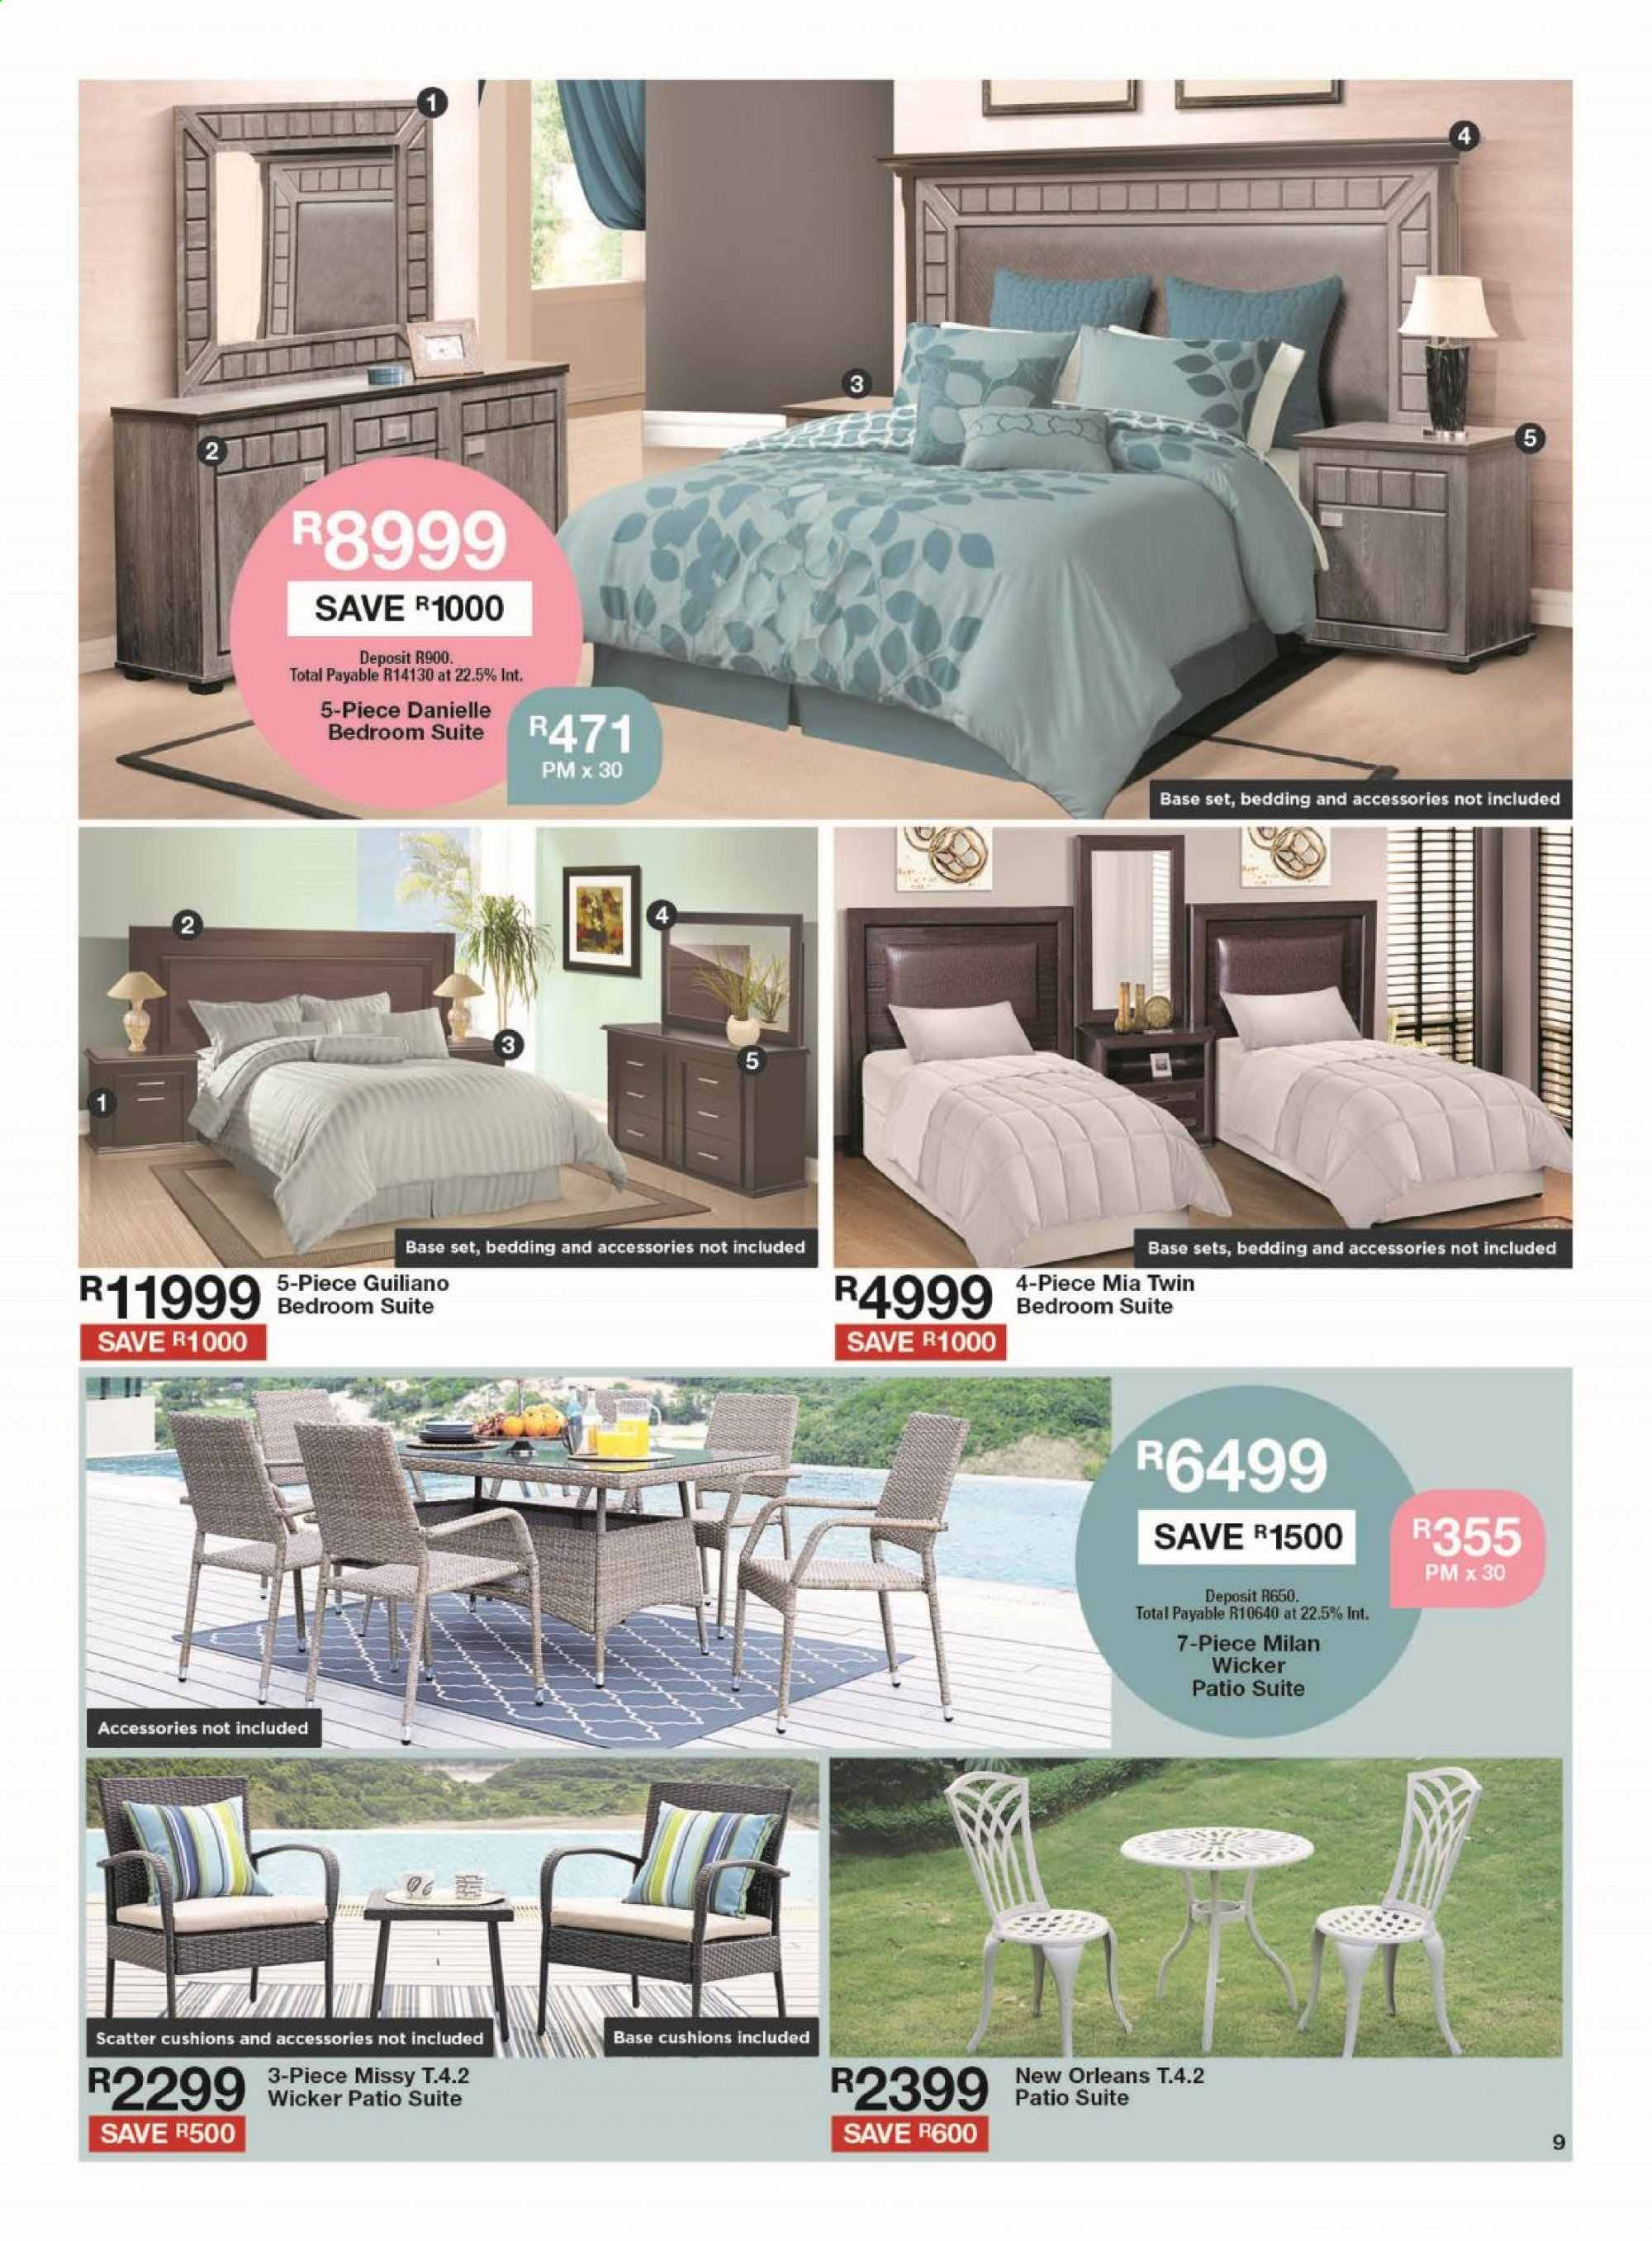 House & Home catalogue  - 08.09.2019 - 08.18.2019. Page 7.